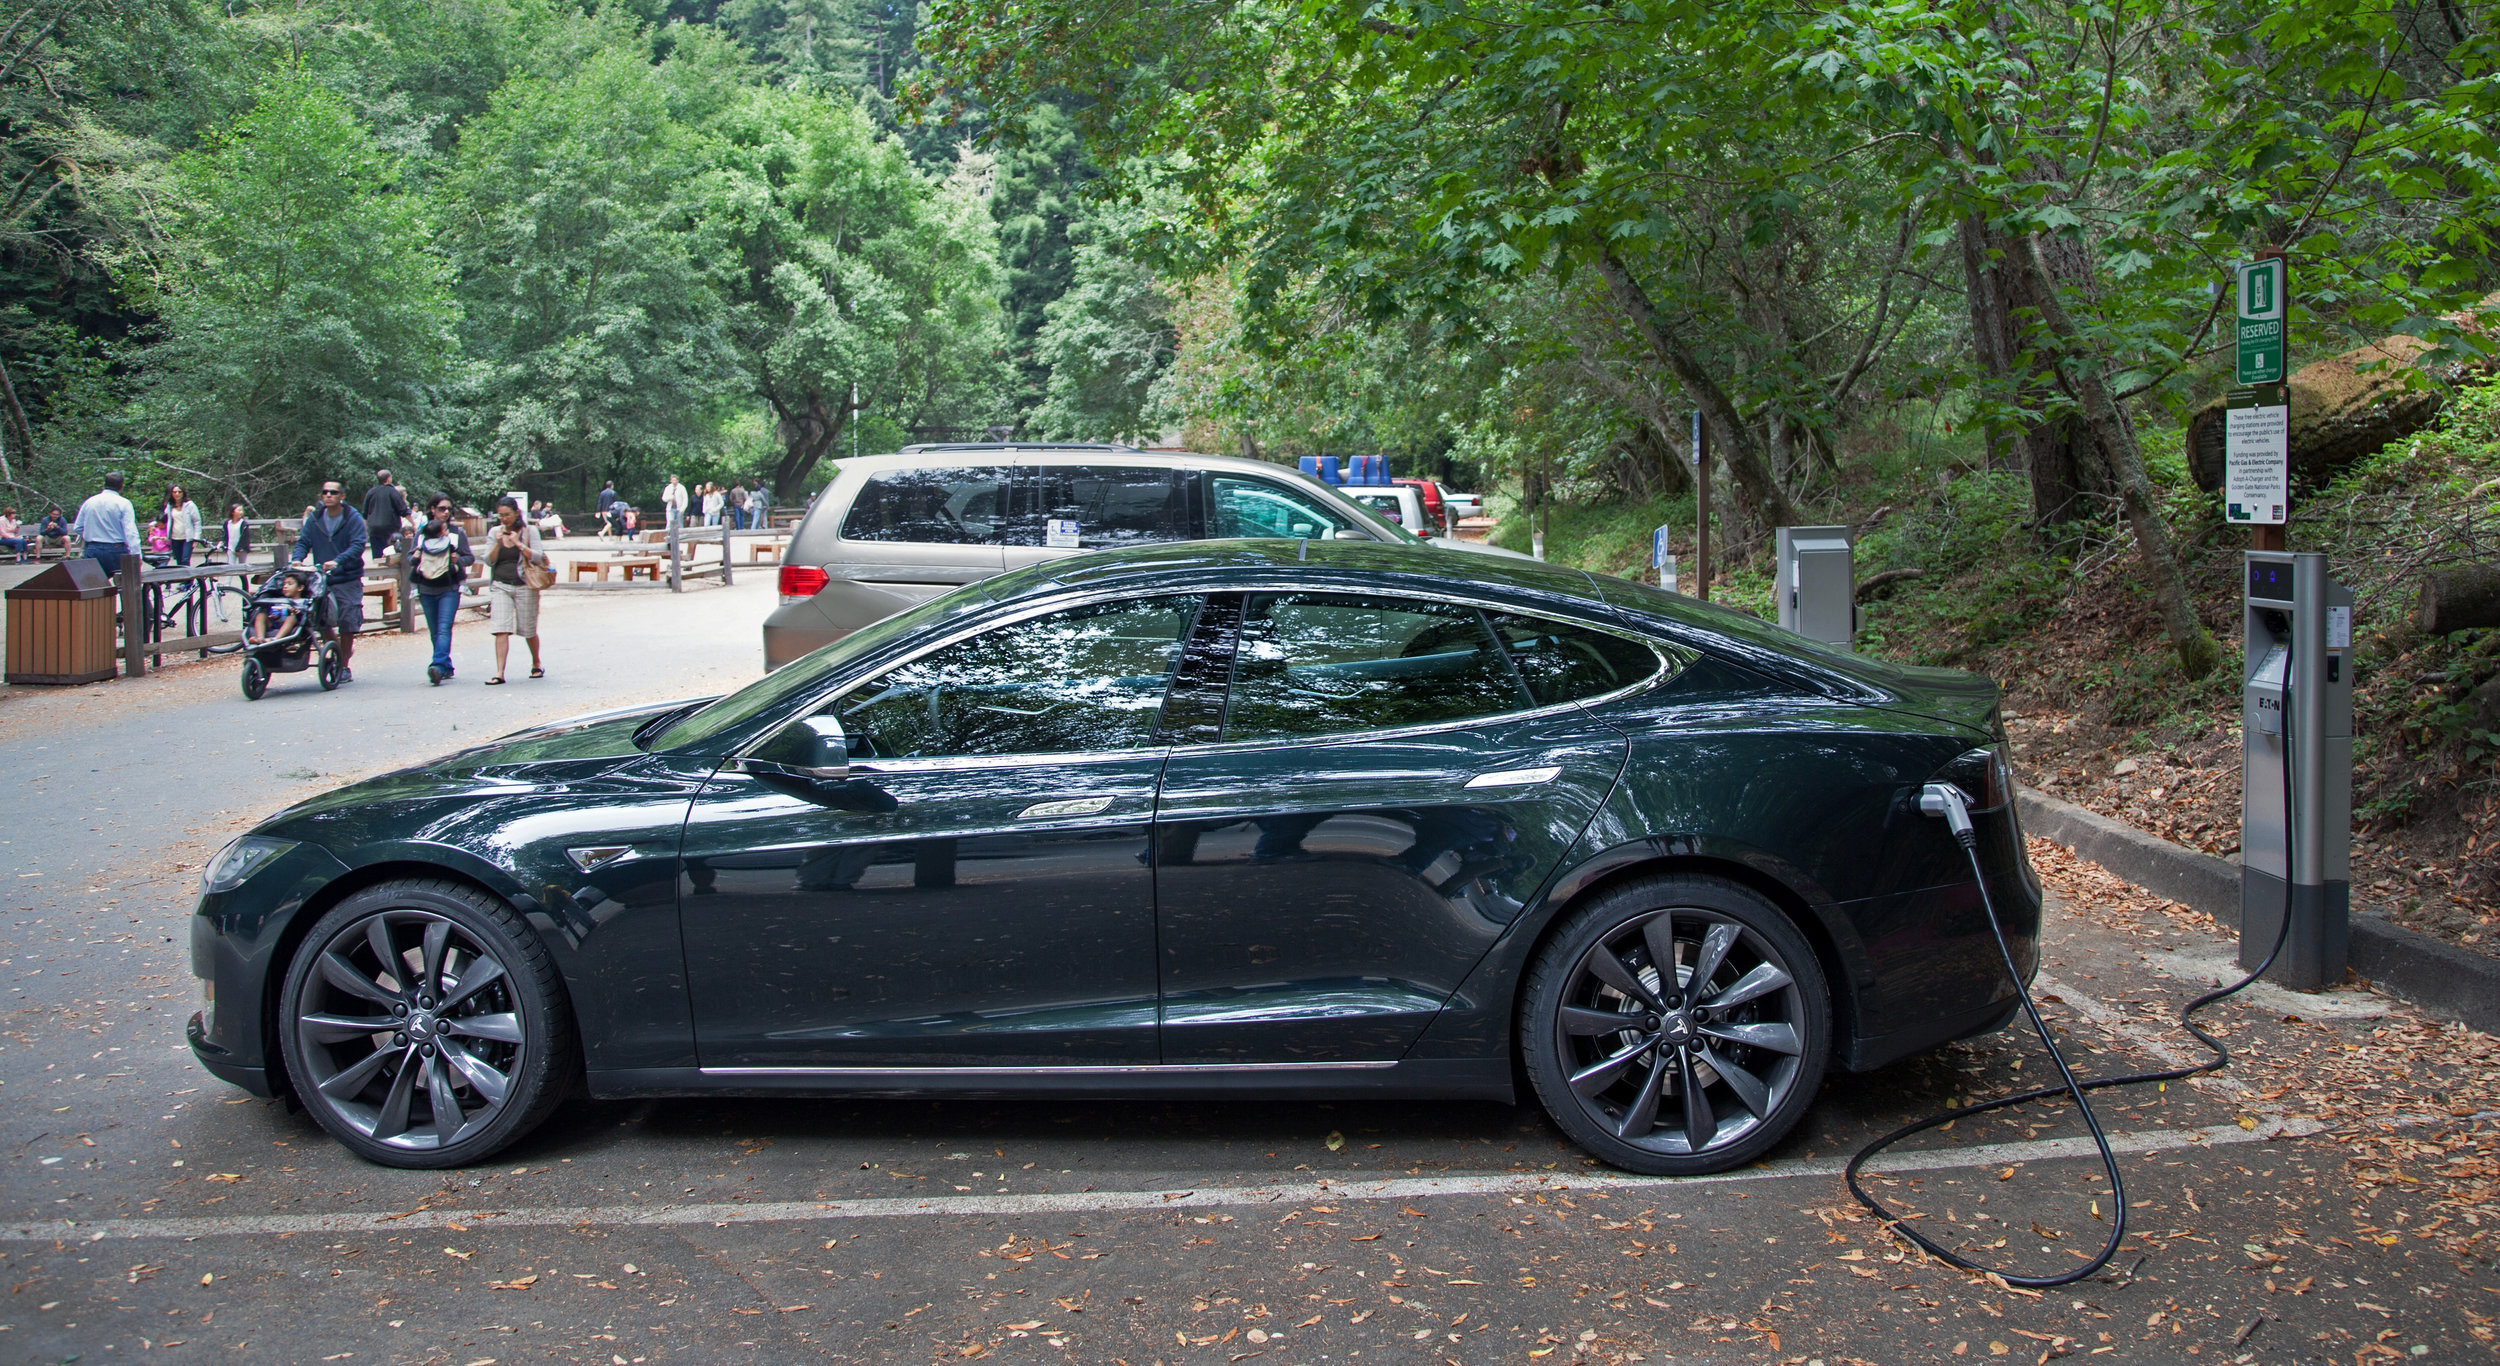 Electric cars such as the Tesla model S are only as good as their battery life, and nanomaterials have the potential to extend driving time on one charge.   Wikimedia Commons  (public domain)